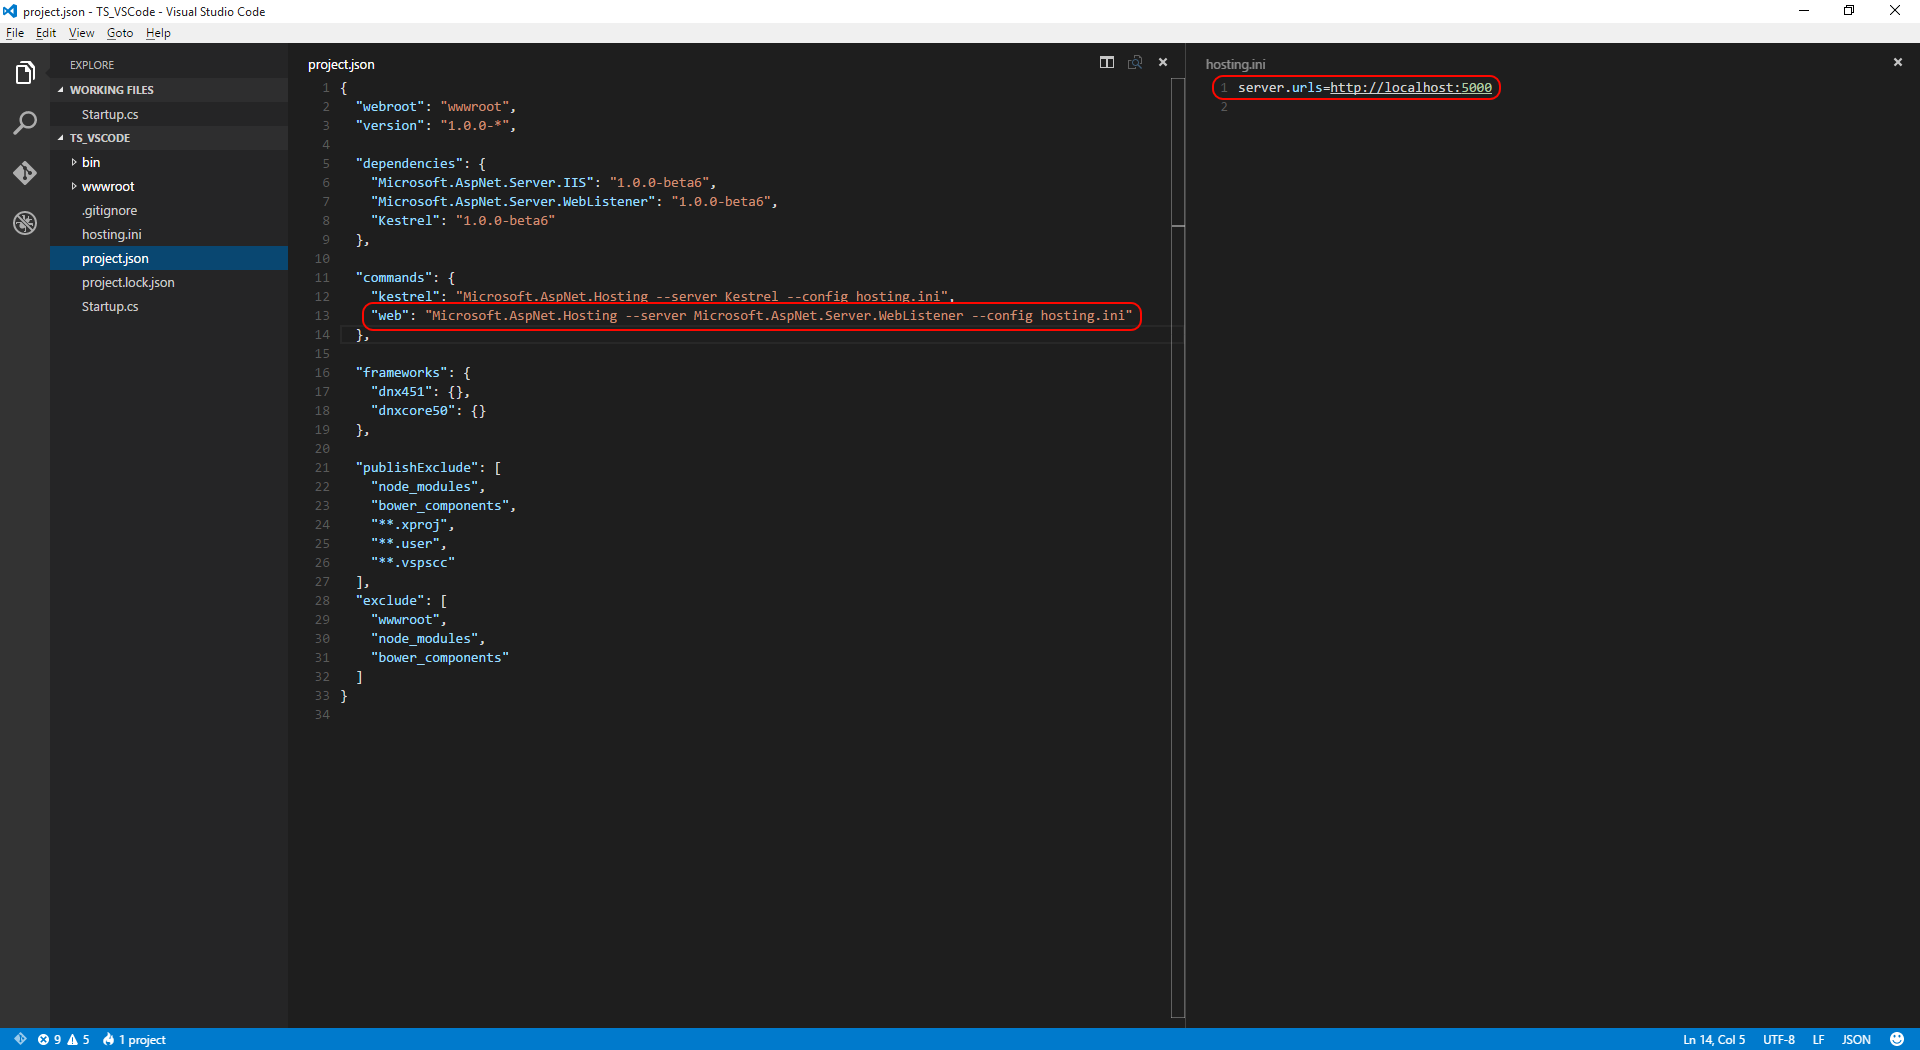 VS Code showing project.json web command pointing at hosting.ini